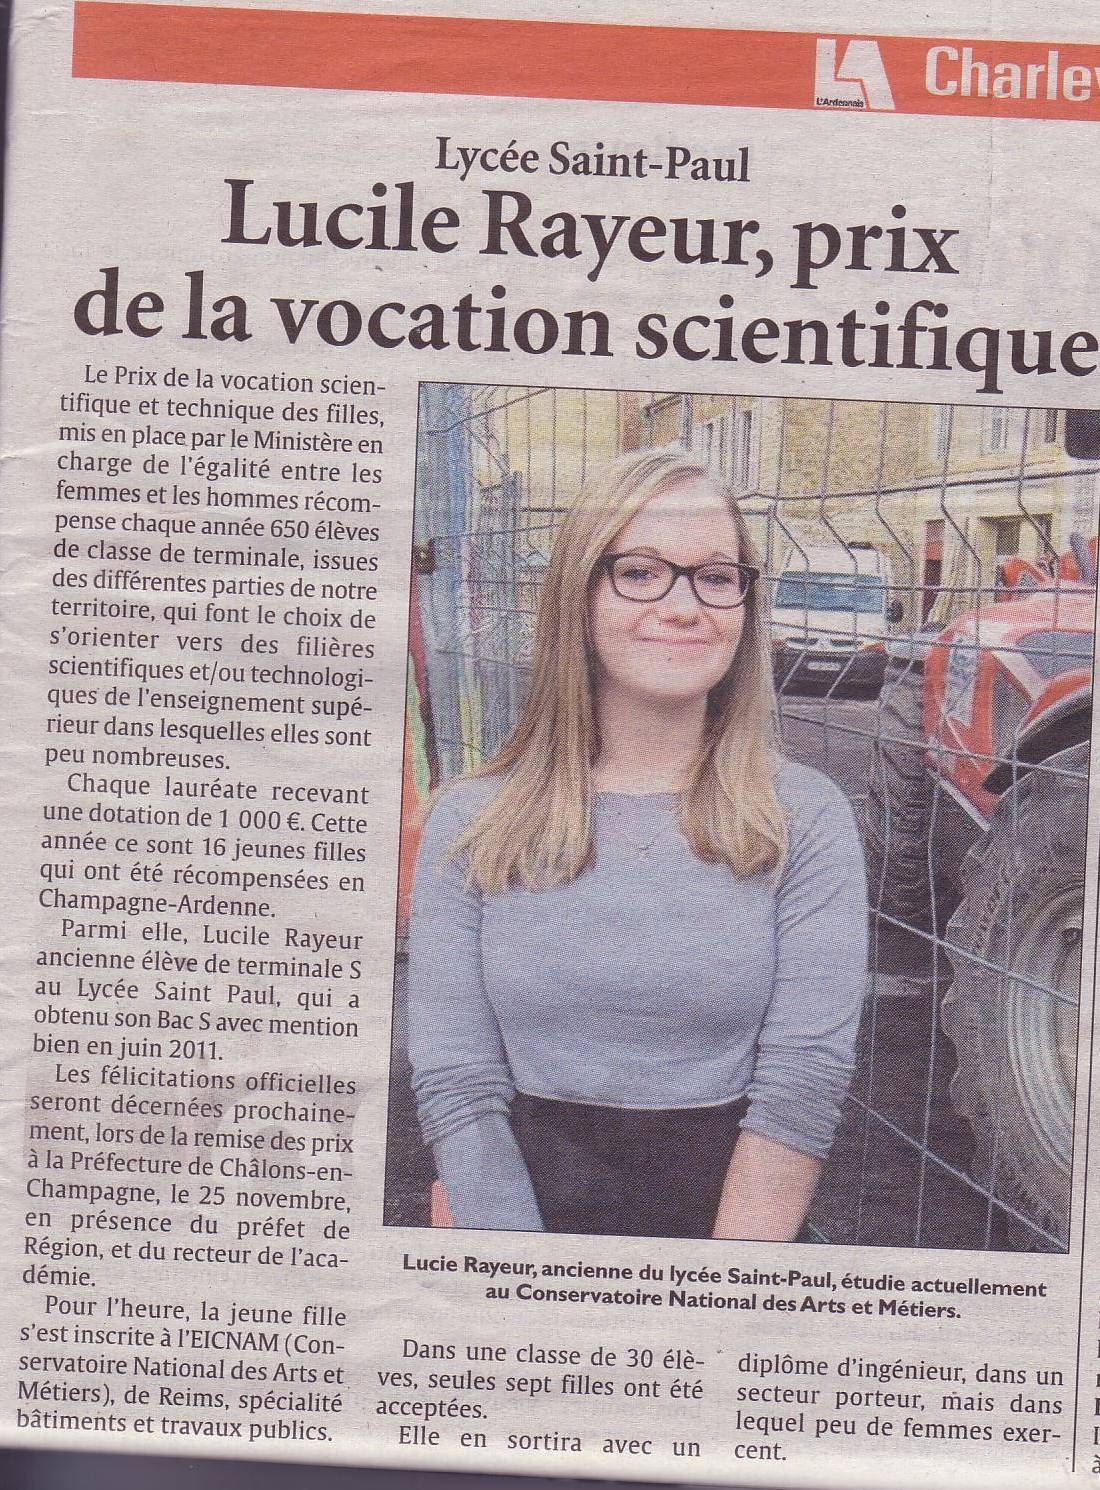 Lucie Rayeur, prix de la vocation scientifique